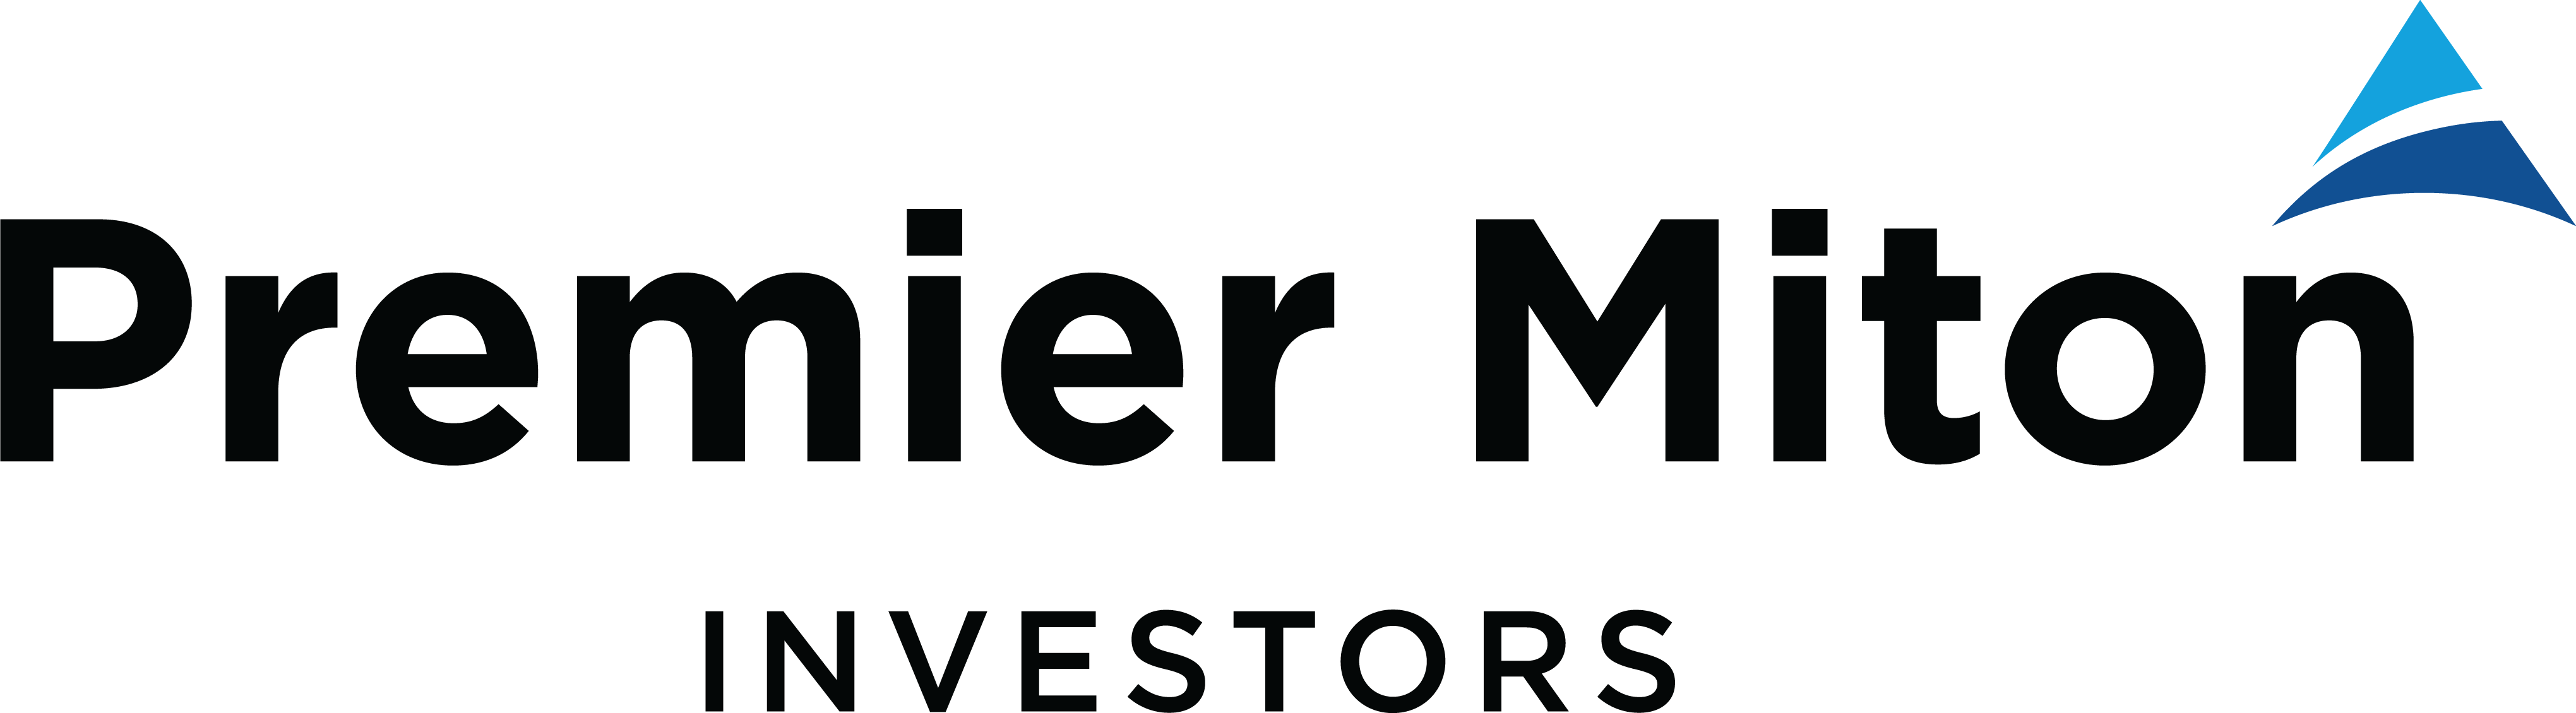 PREMIER MITON GLOBAL RENEWABLES TRUST PLC Logo